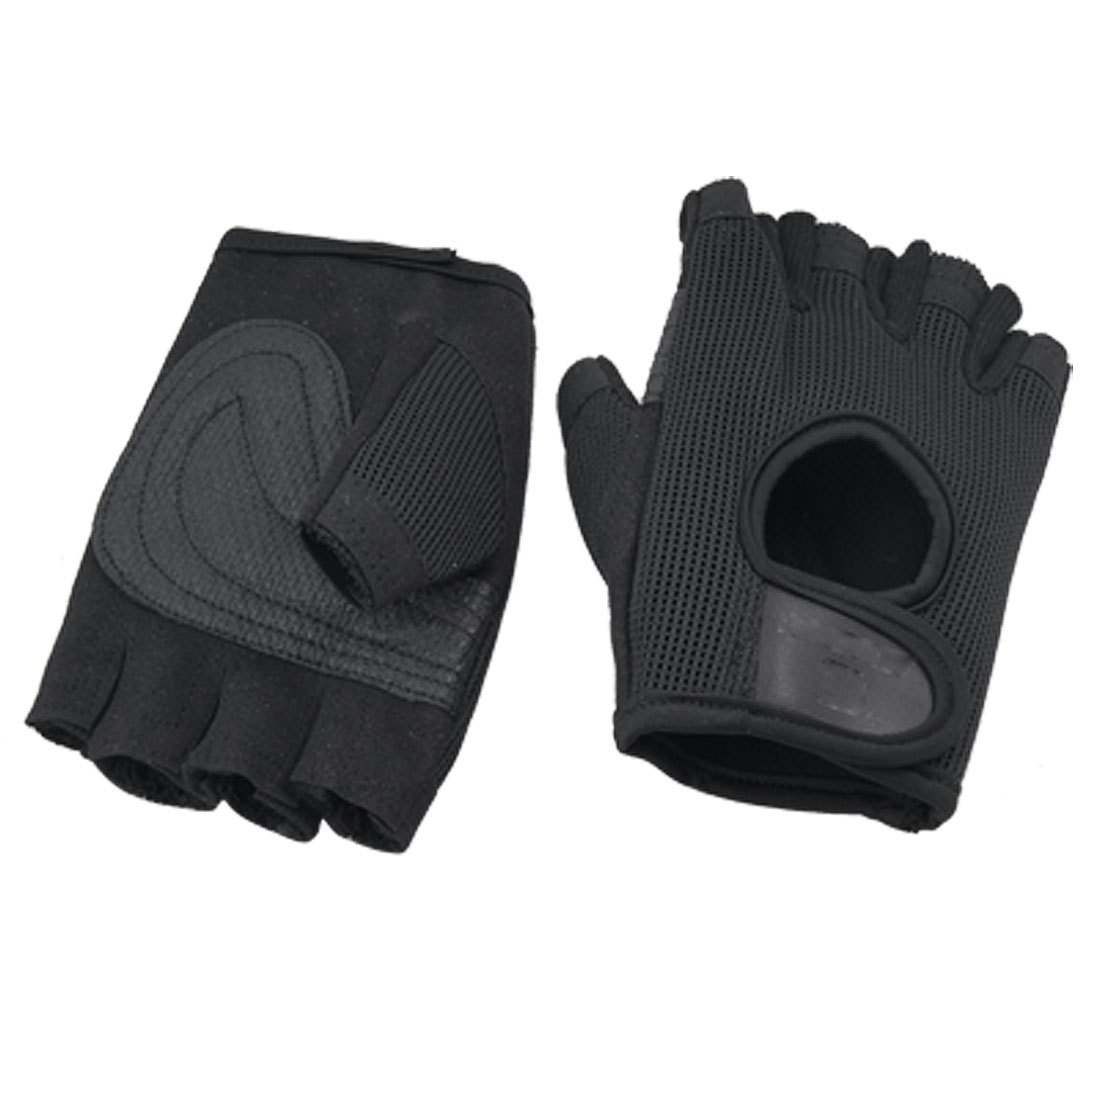 Pair Black Breathable Mountain Bike Fingerless Gloves